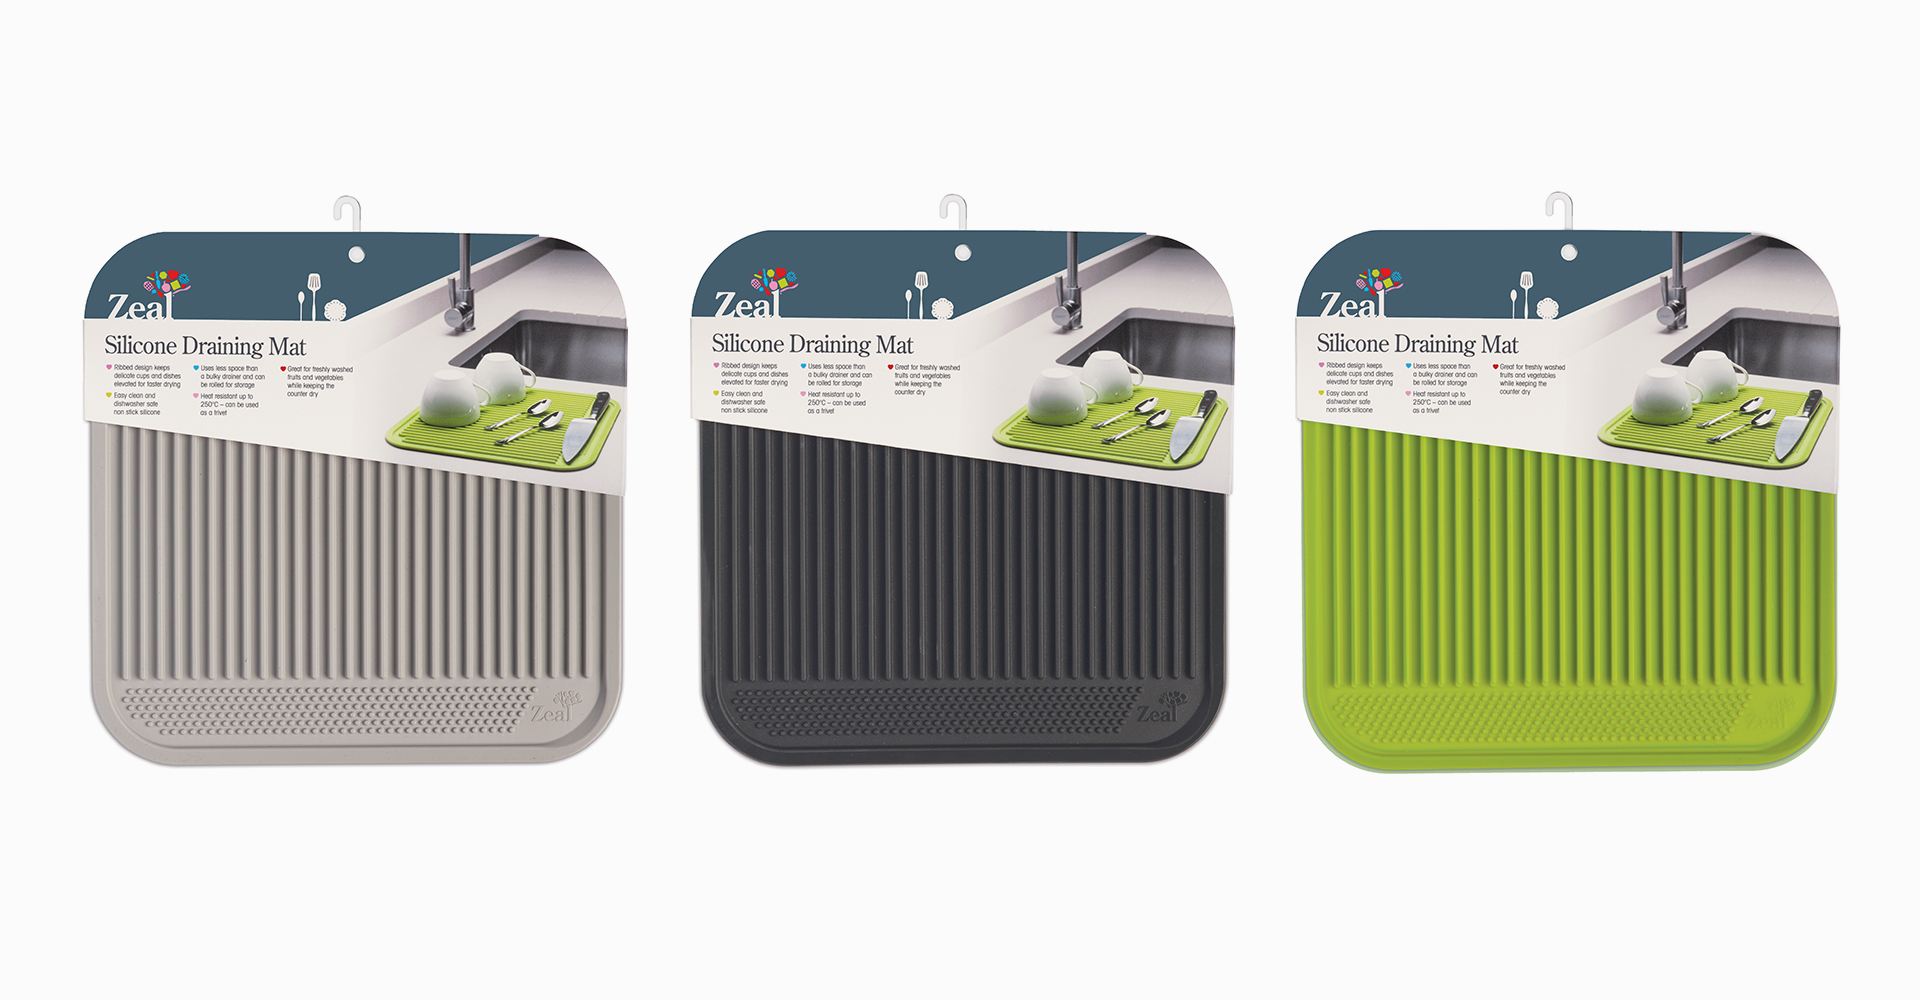 CKS Zeal 2018 range  Draining mat - CKS - Zeal - Texture - Grey - Black - Lime green - Packaging - Design - Logo - Design - Graphics - Graphic design - Silicone - Product - Photography